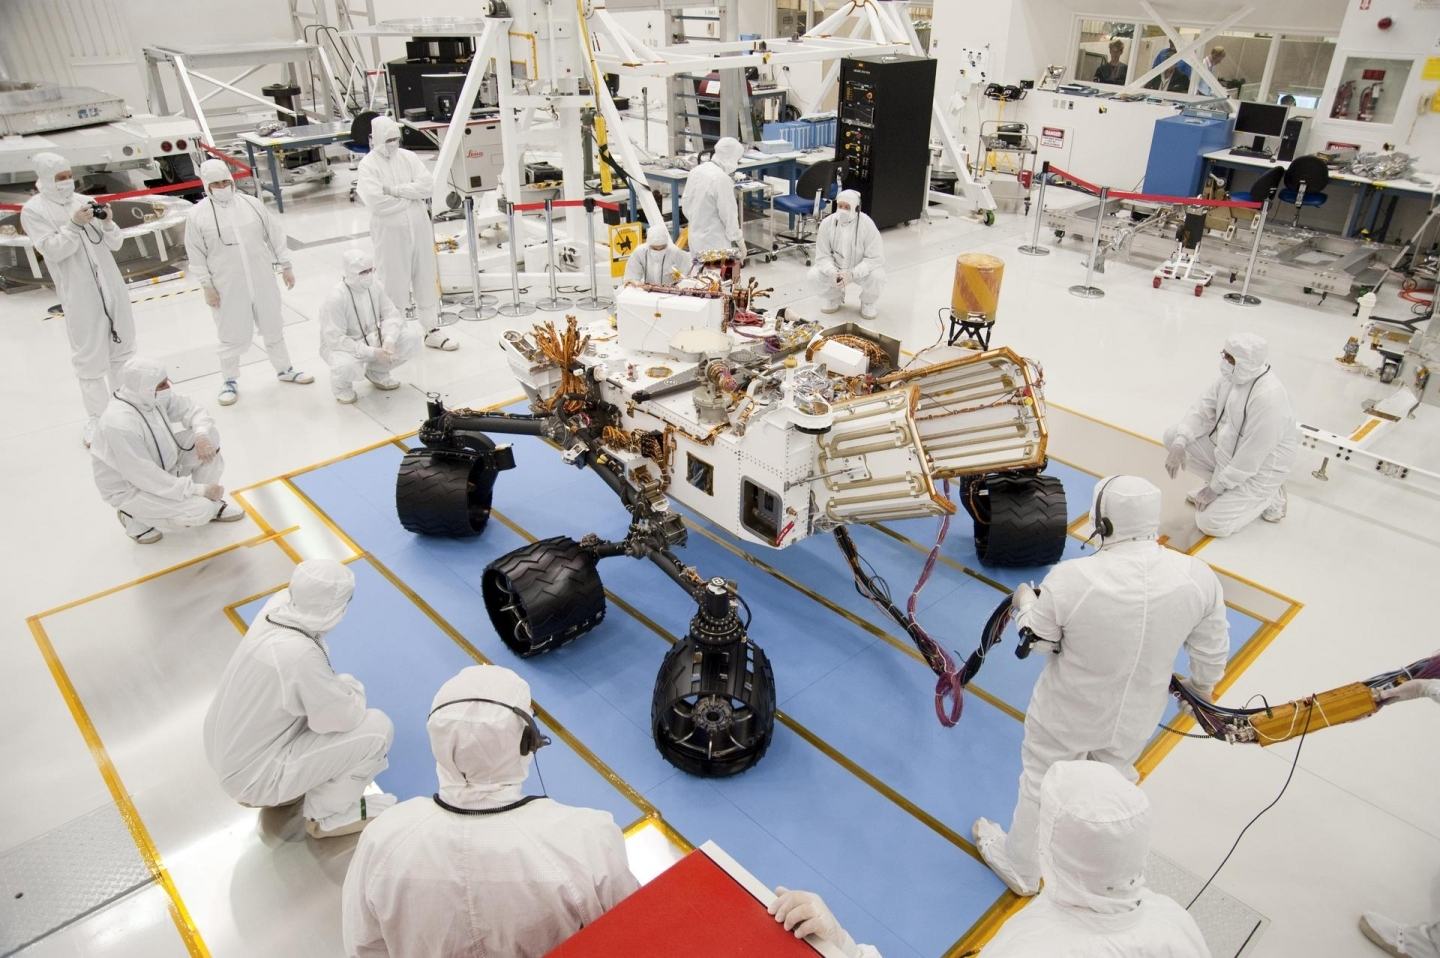 Technicians and engineers in clean-room garb monitor the first drive test of NASA Curiosity rover on July 23, 2010. (NASA/JPL-Caltech)